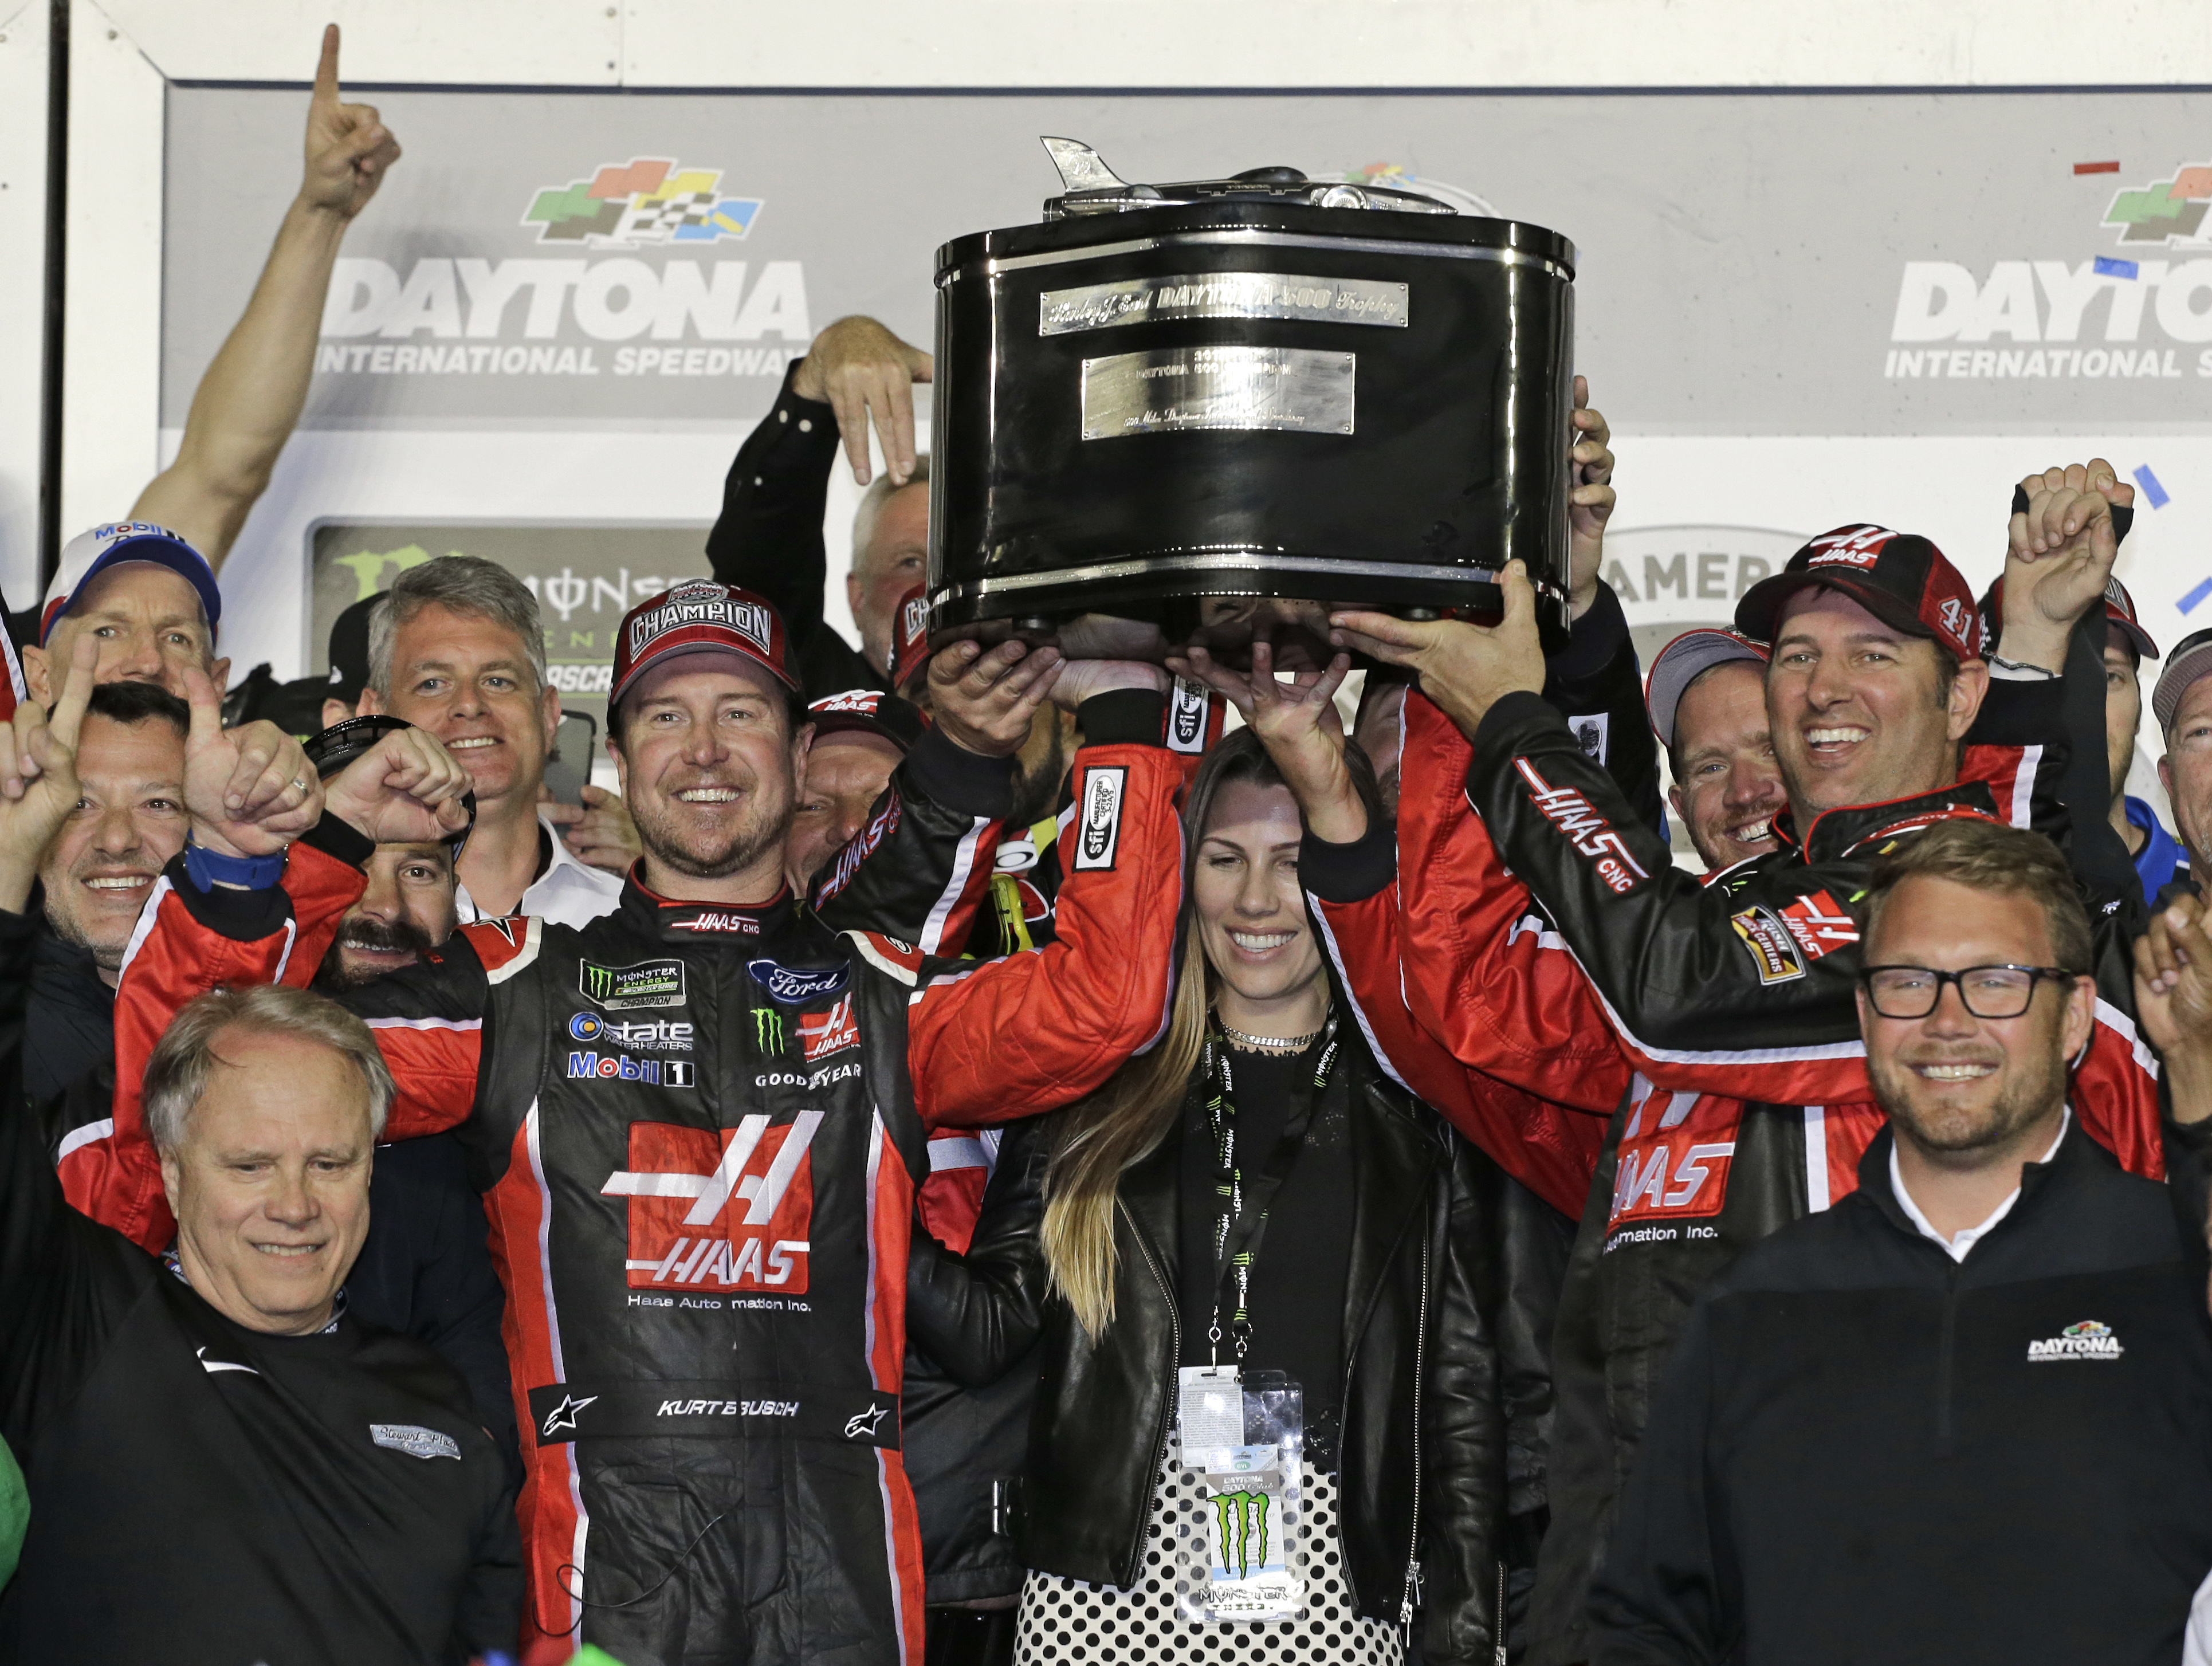 Kurt Busch, center left, and team members raise the trophy in Victory Lane after winning the NASCAR Daytona 500 auto race at Daytona International Speedway in Daytona Beach, Fla., Sunday, Feb. 26, 2017. (AP Photo/Terry Renna)